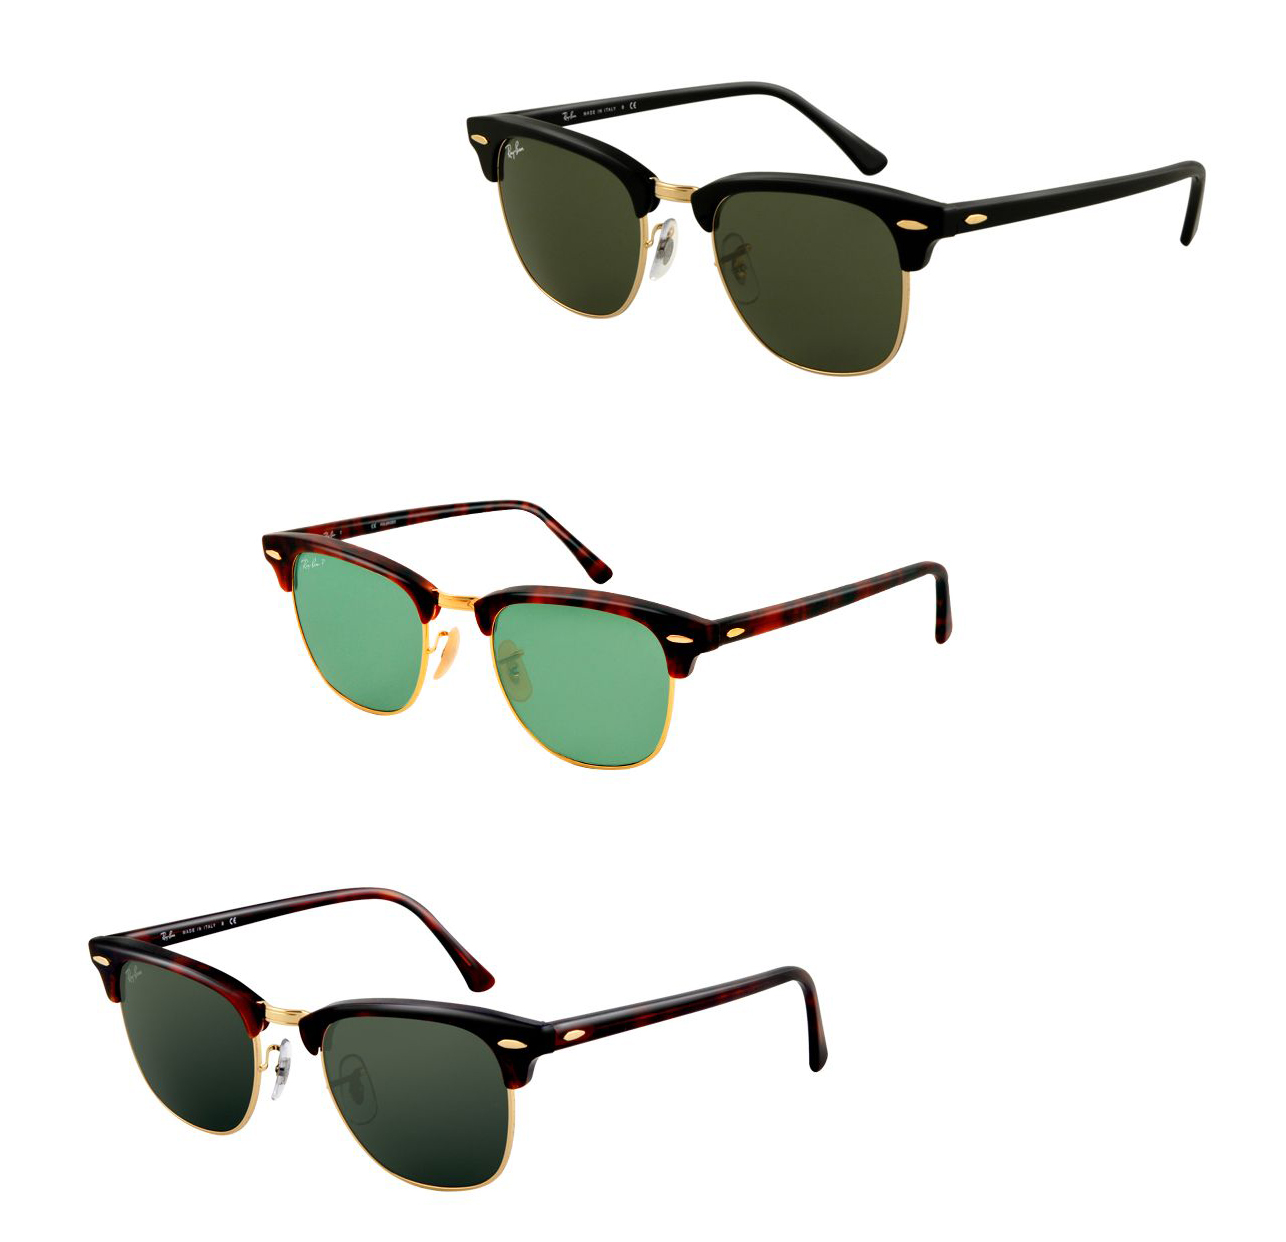 Ray-Ban Clubmaster Sunglasses RB3016   4.4 Star Rating w  Free Shipping and  Handling f429f20b6d